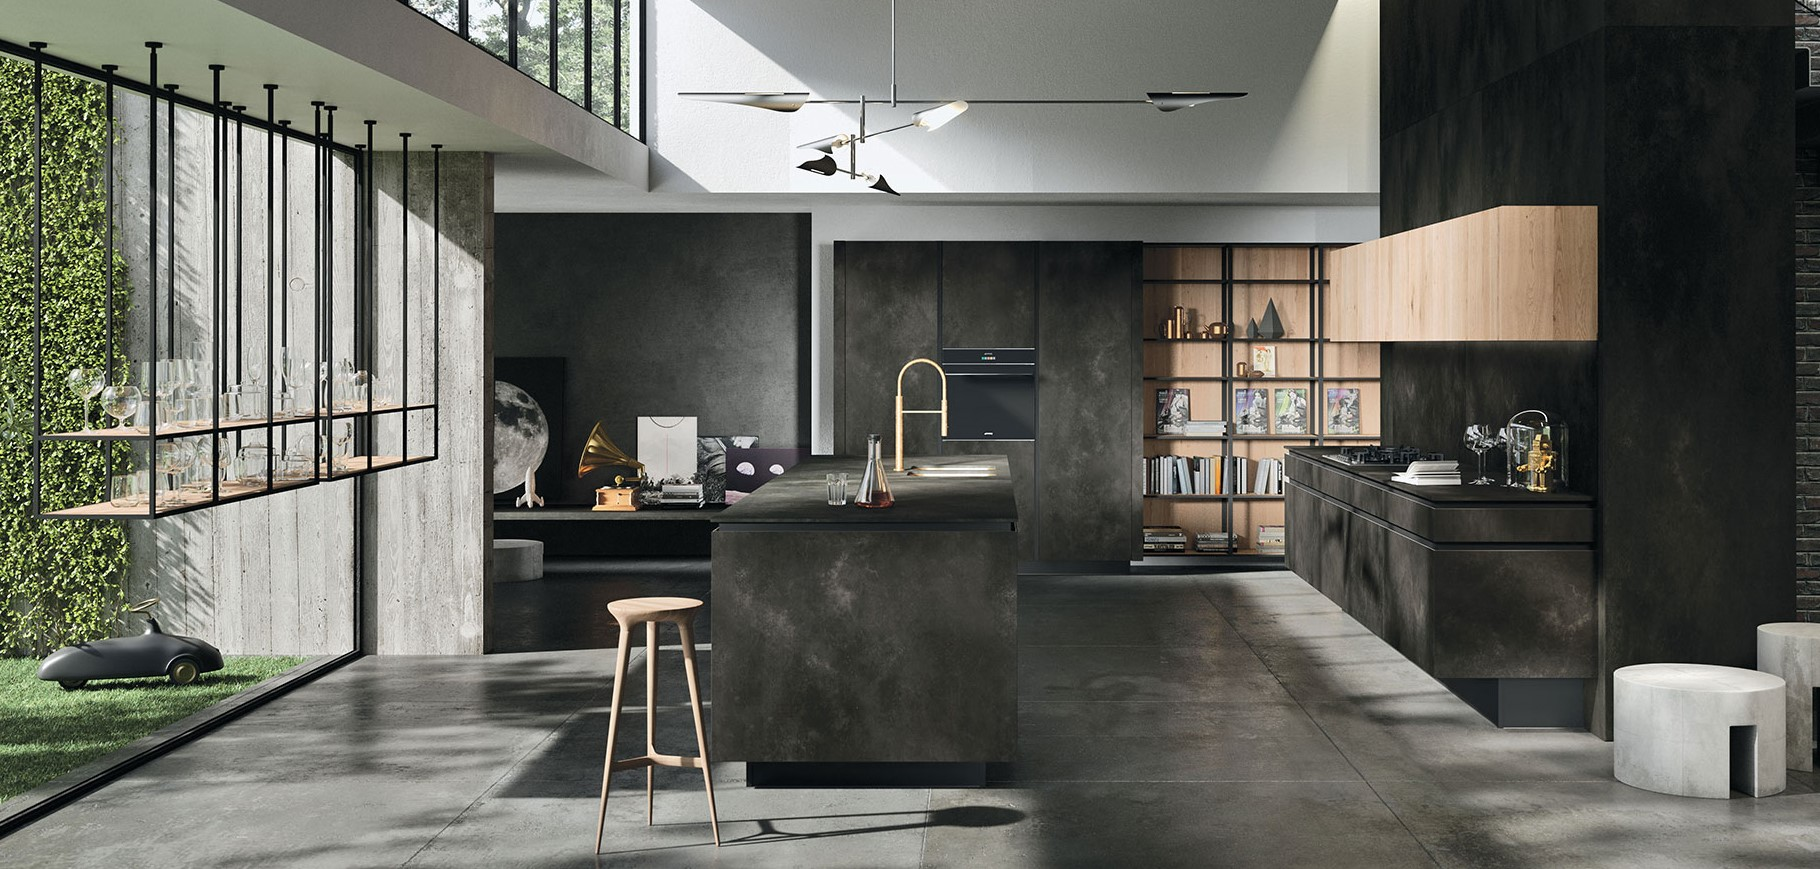 Cucine di design un viaggio tra stili e nuovi materiali for Stili di design di mobili